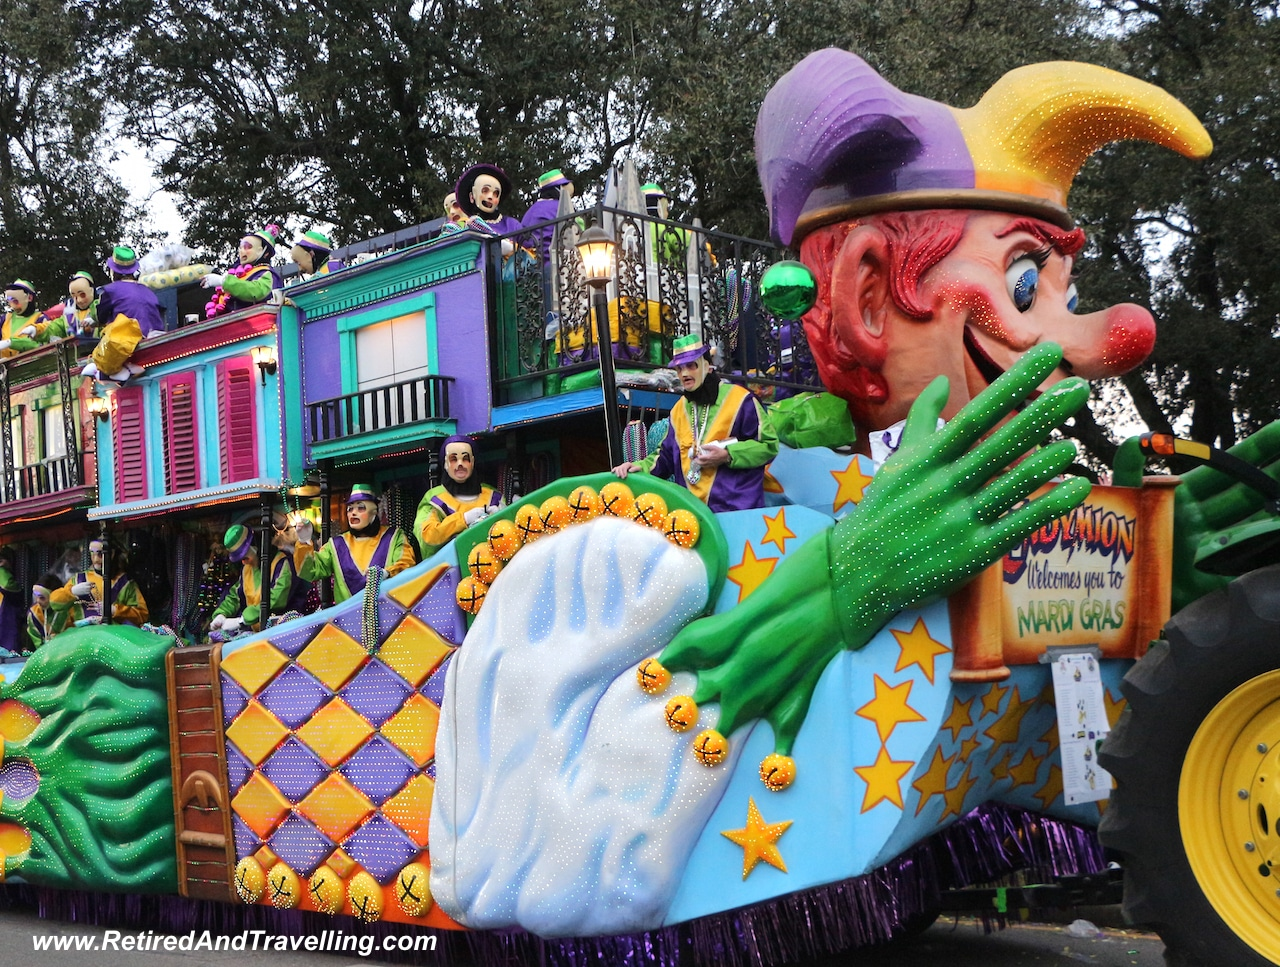 NOLA Mardi Gras - New Orleans is More Than Mardi Gras.jpg